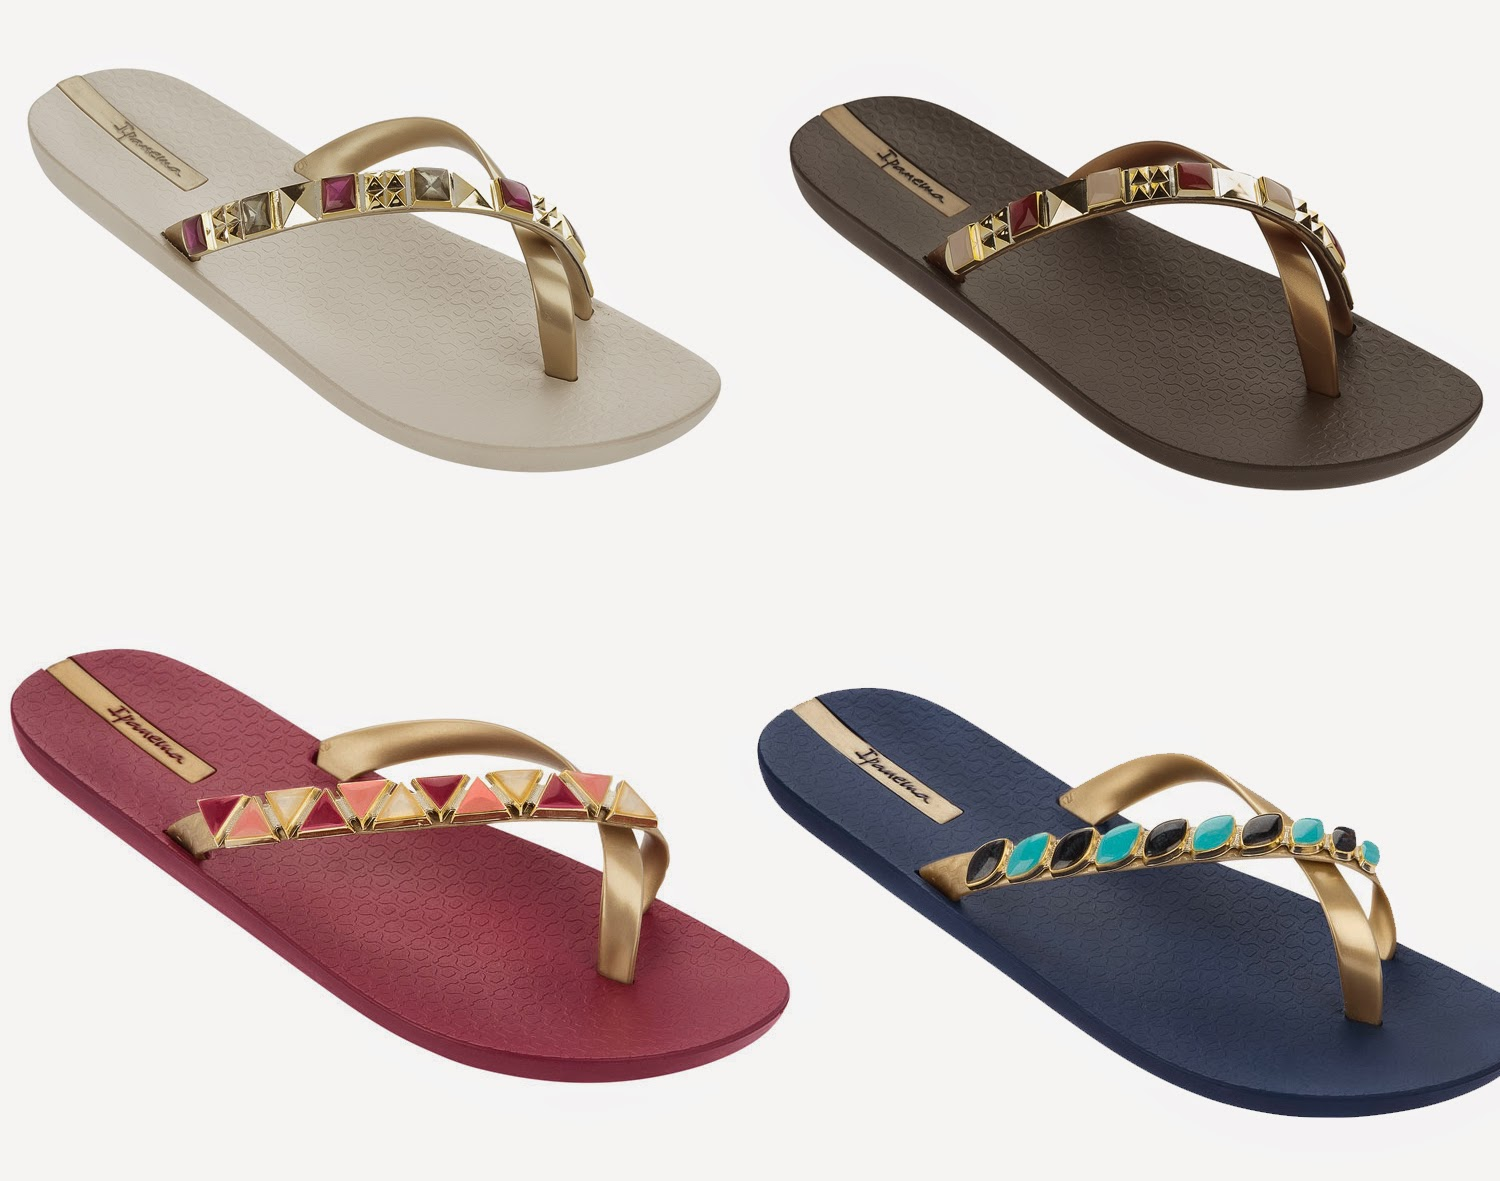 fae3155bf59e Then the cute Mother-Daughter matching flip flops called GB Sandal Fem. I  wish I had a daughter